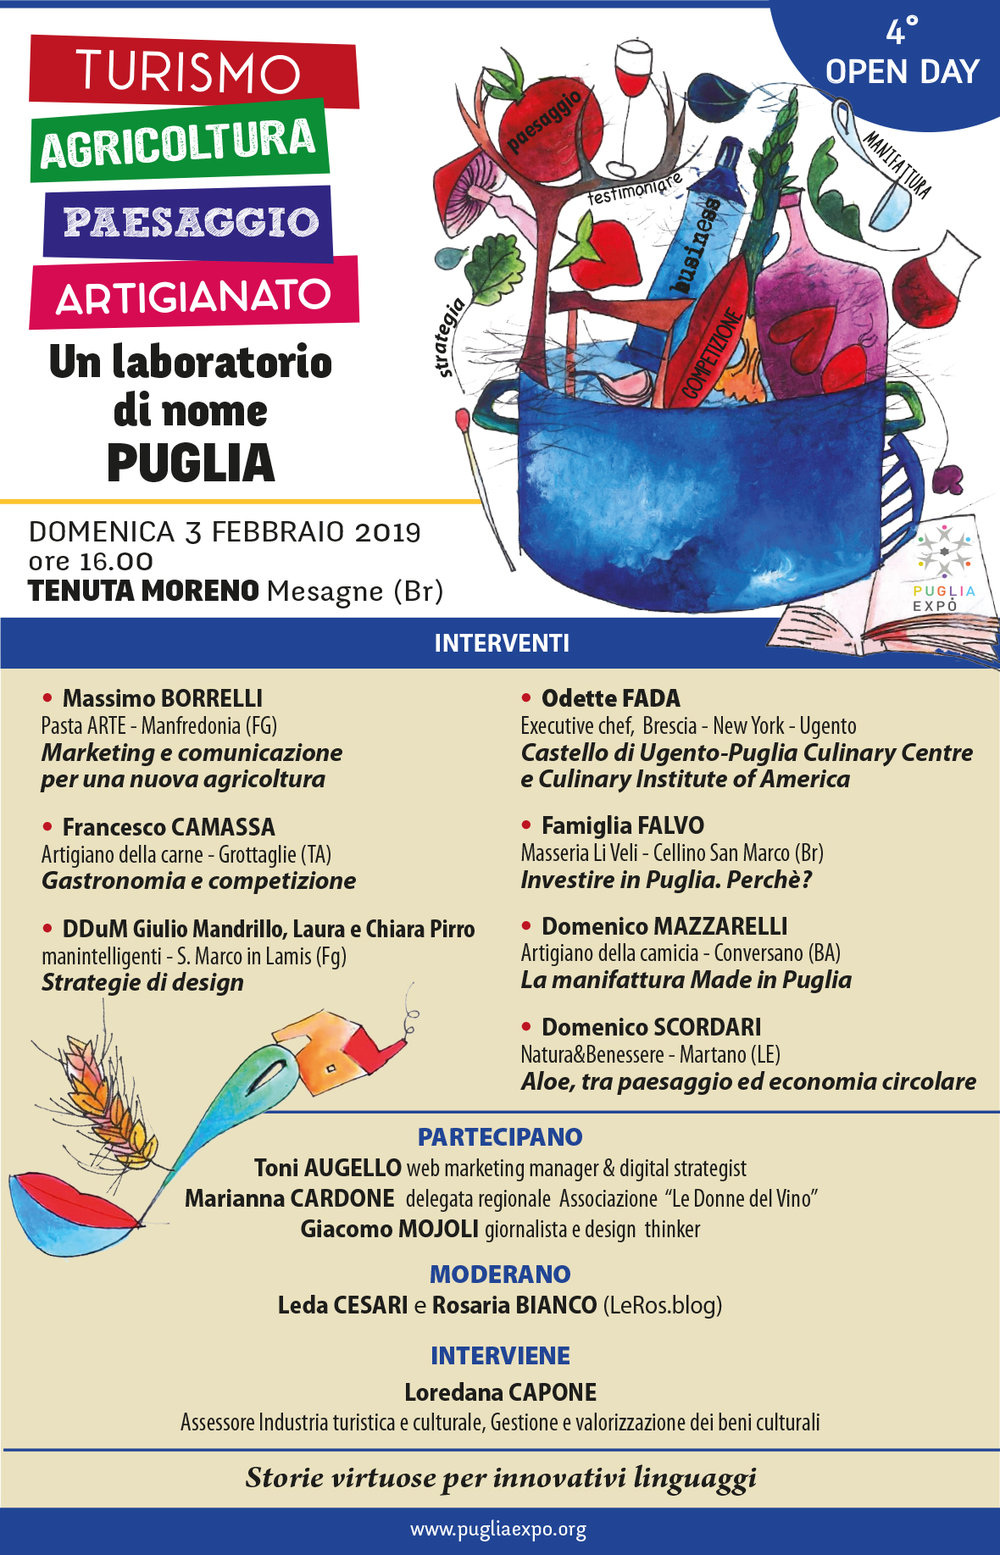 OPEN DAY 2019 definitivo copia-1.jpg